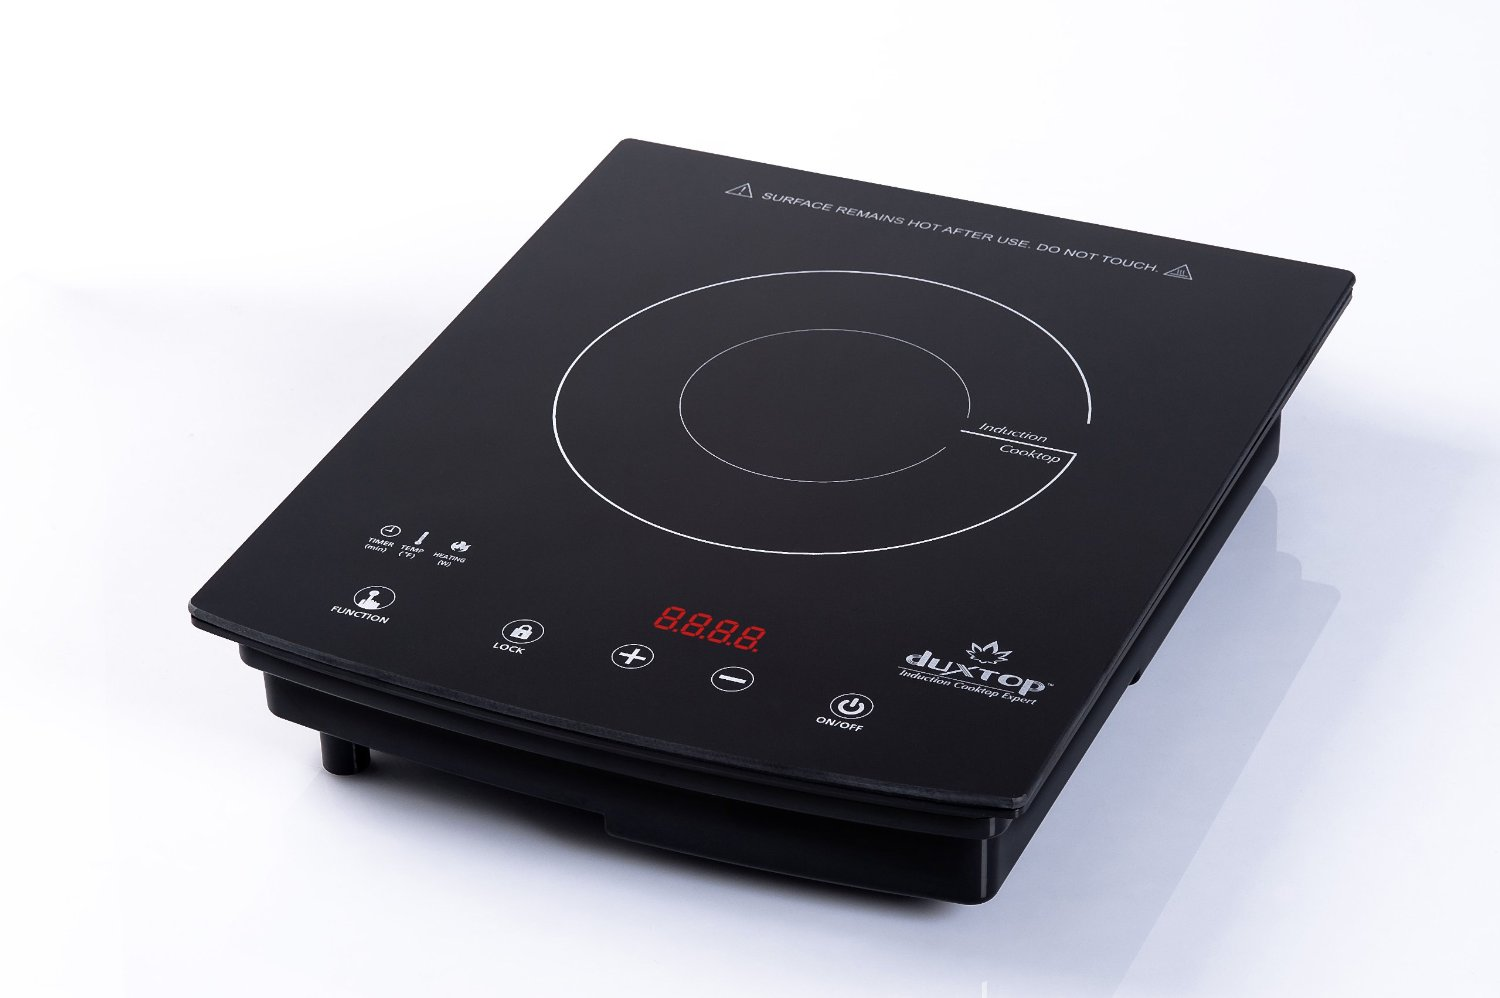 duxtop 8300st sensor touch panel induction cooktop review. Black Bedroom Furniture Sets. Home Design Ideas